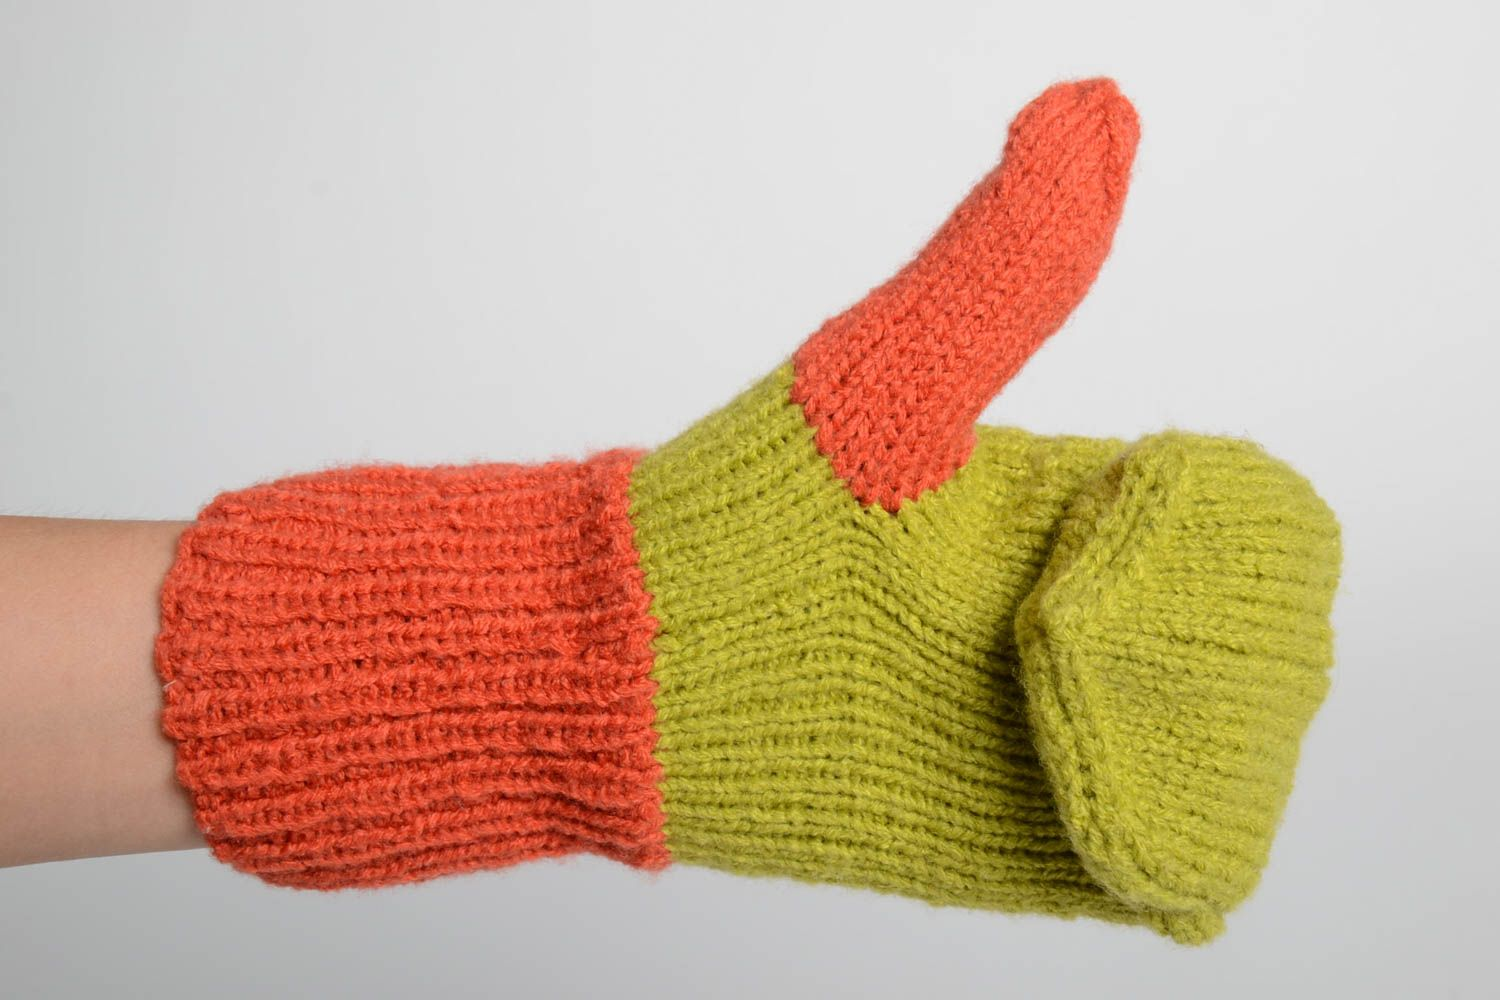 Handmade bright beautiful mittens designer knitted mittens winter clothes photo 1